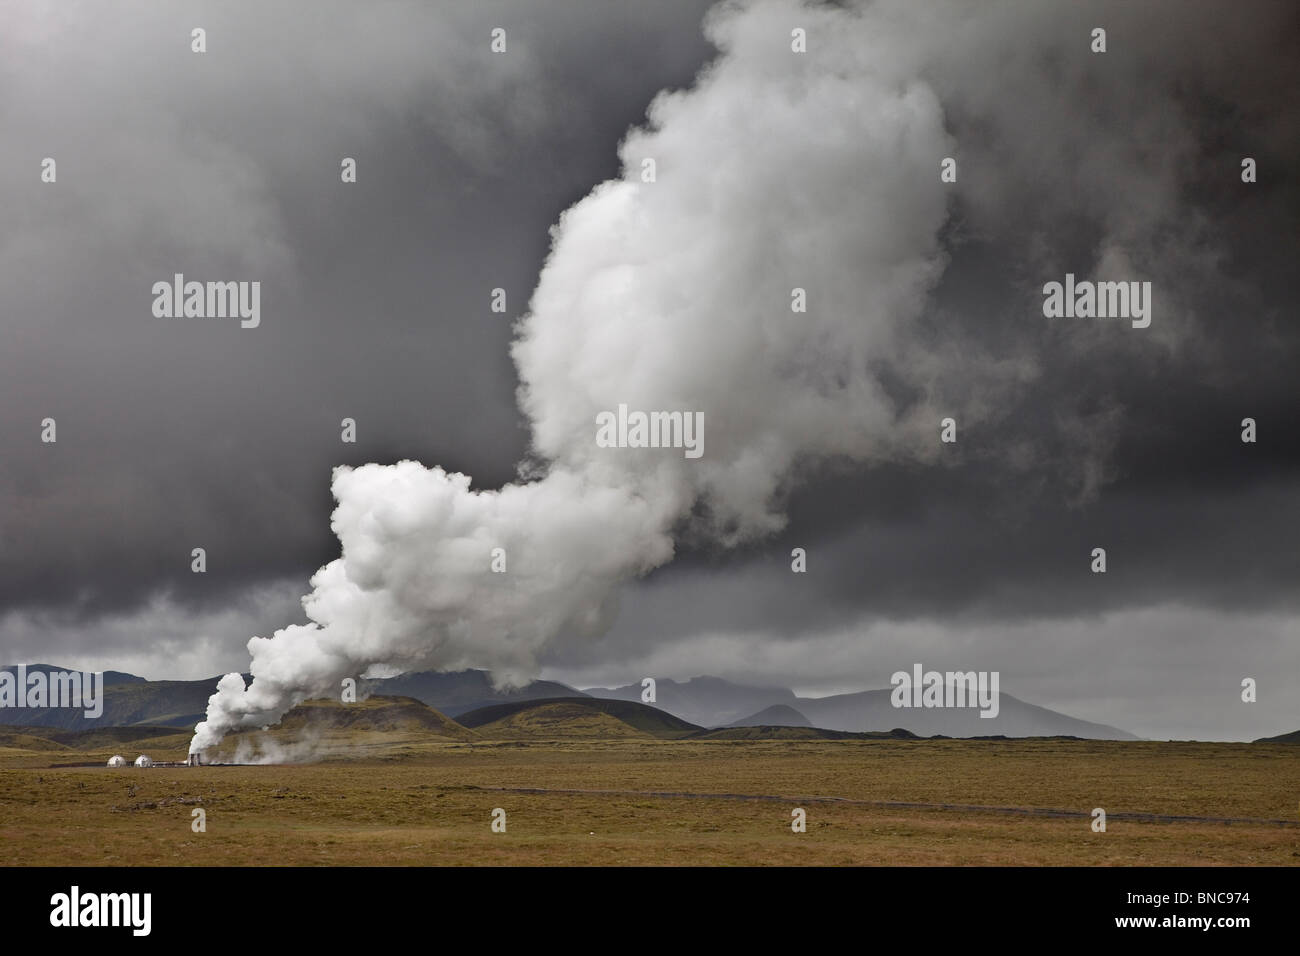 Geothermal hot springs steaming, South Coast, Iceland Stock Photo